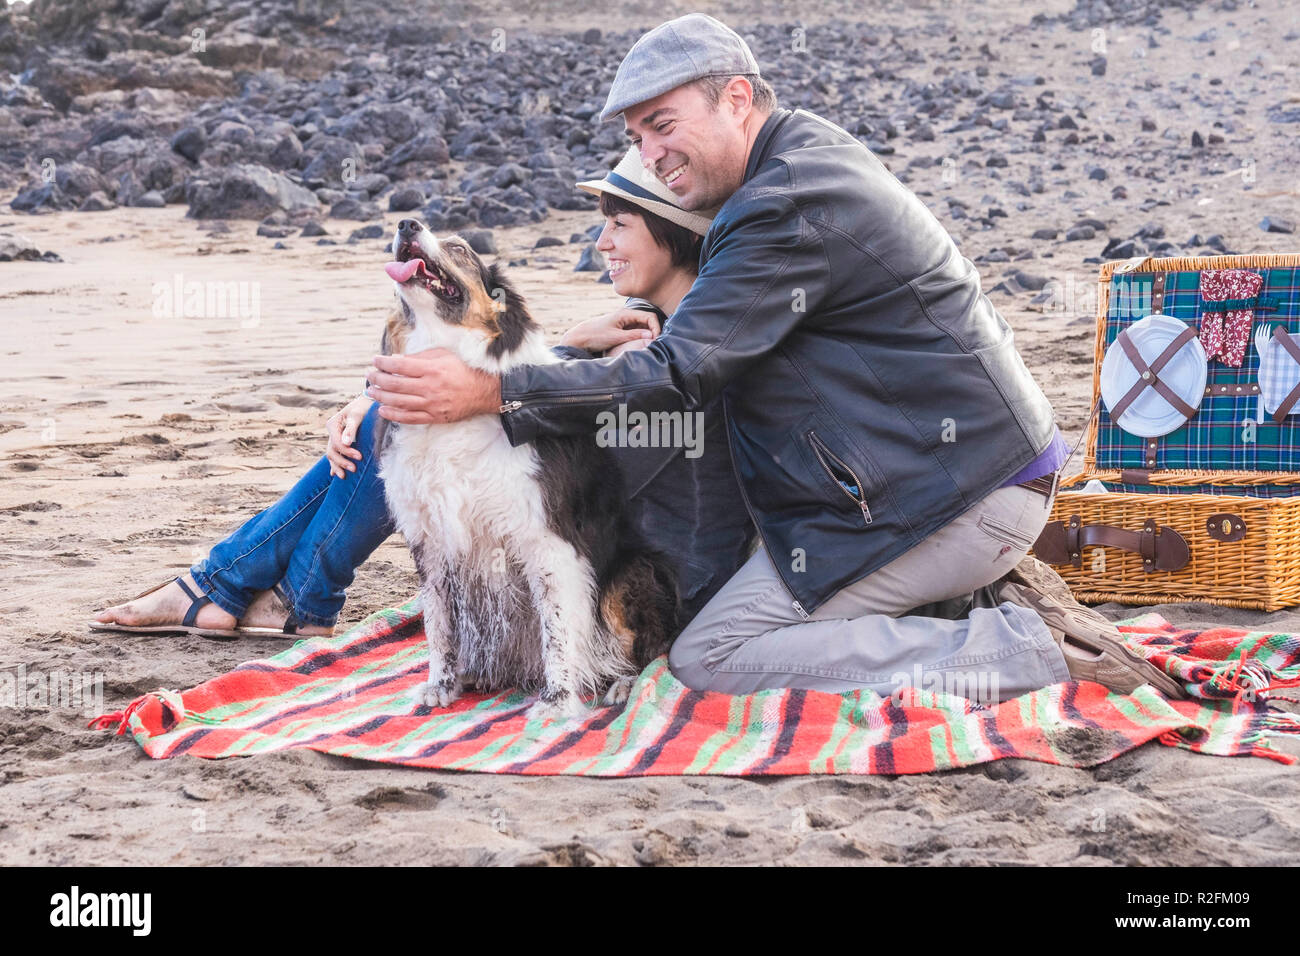 freedom and leisure pic nic activity on the beach for an alternative family group of friends two person and a nice dog. everybody have fun outdoor in vacation Stock Photo